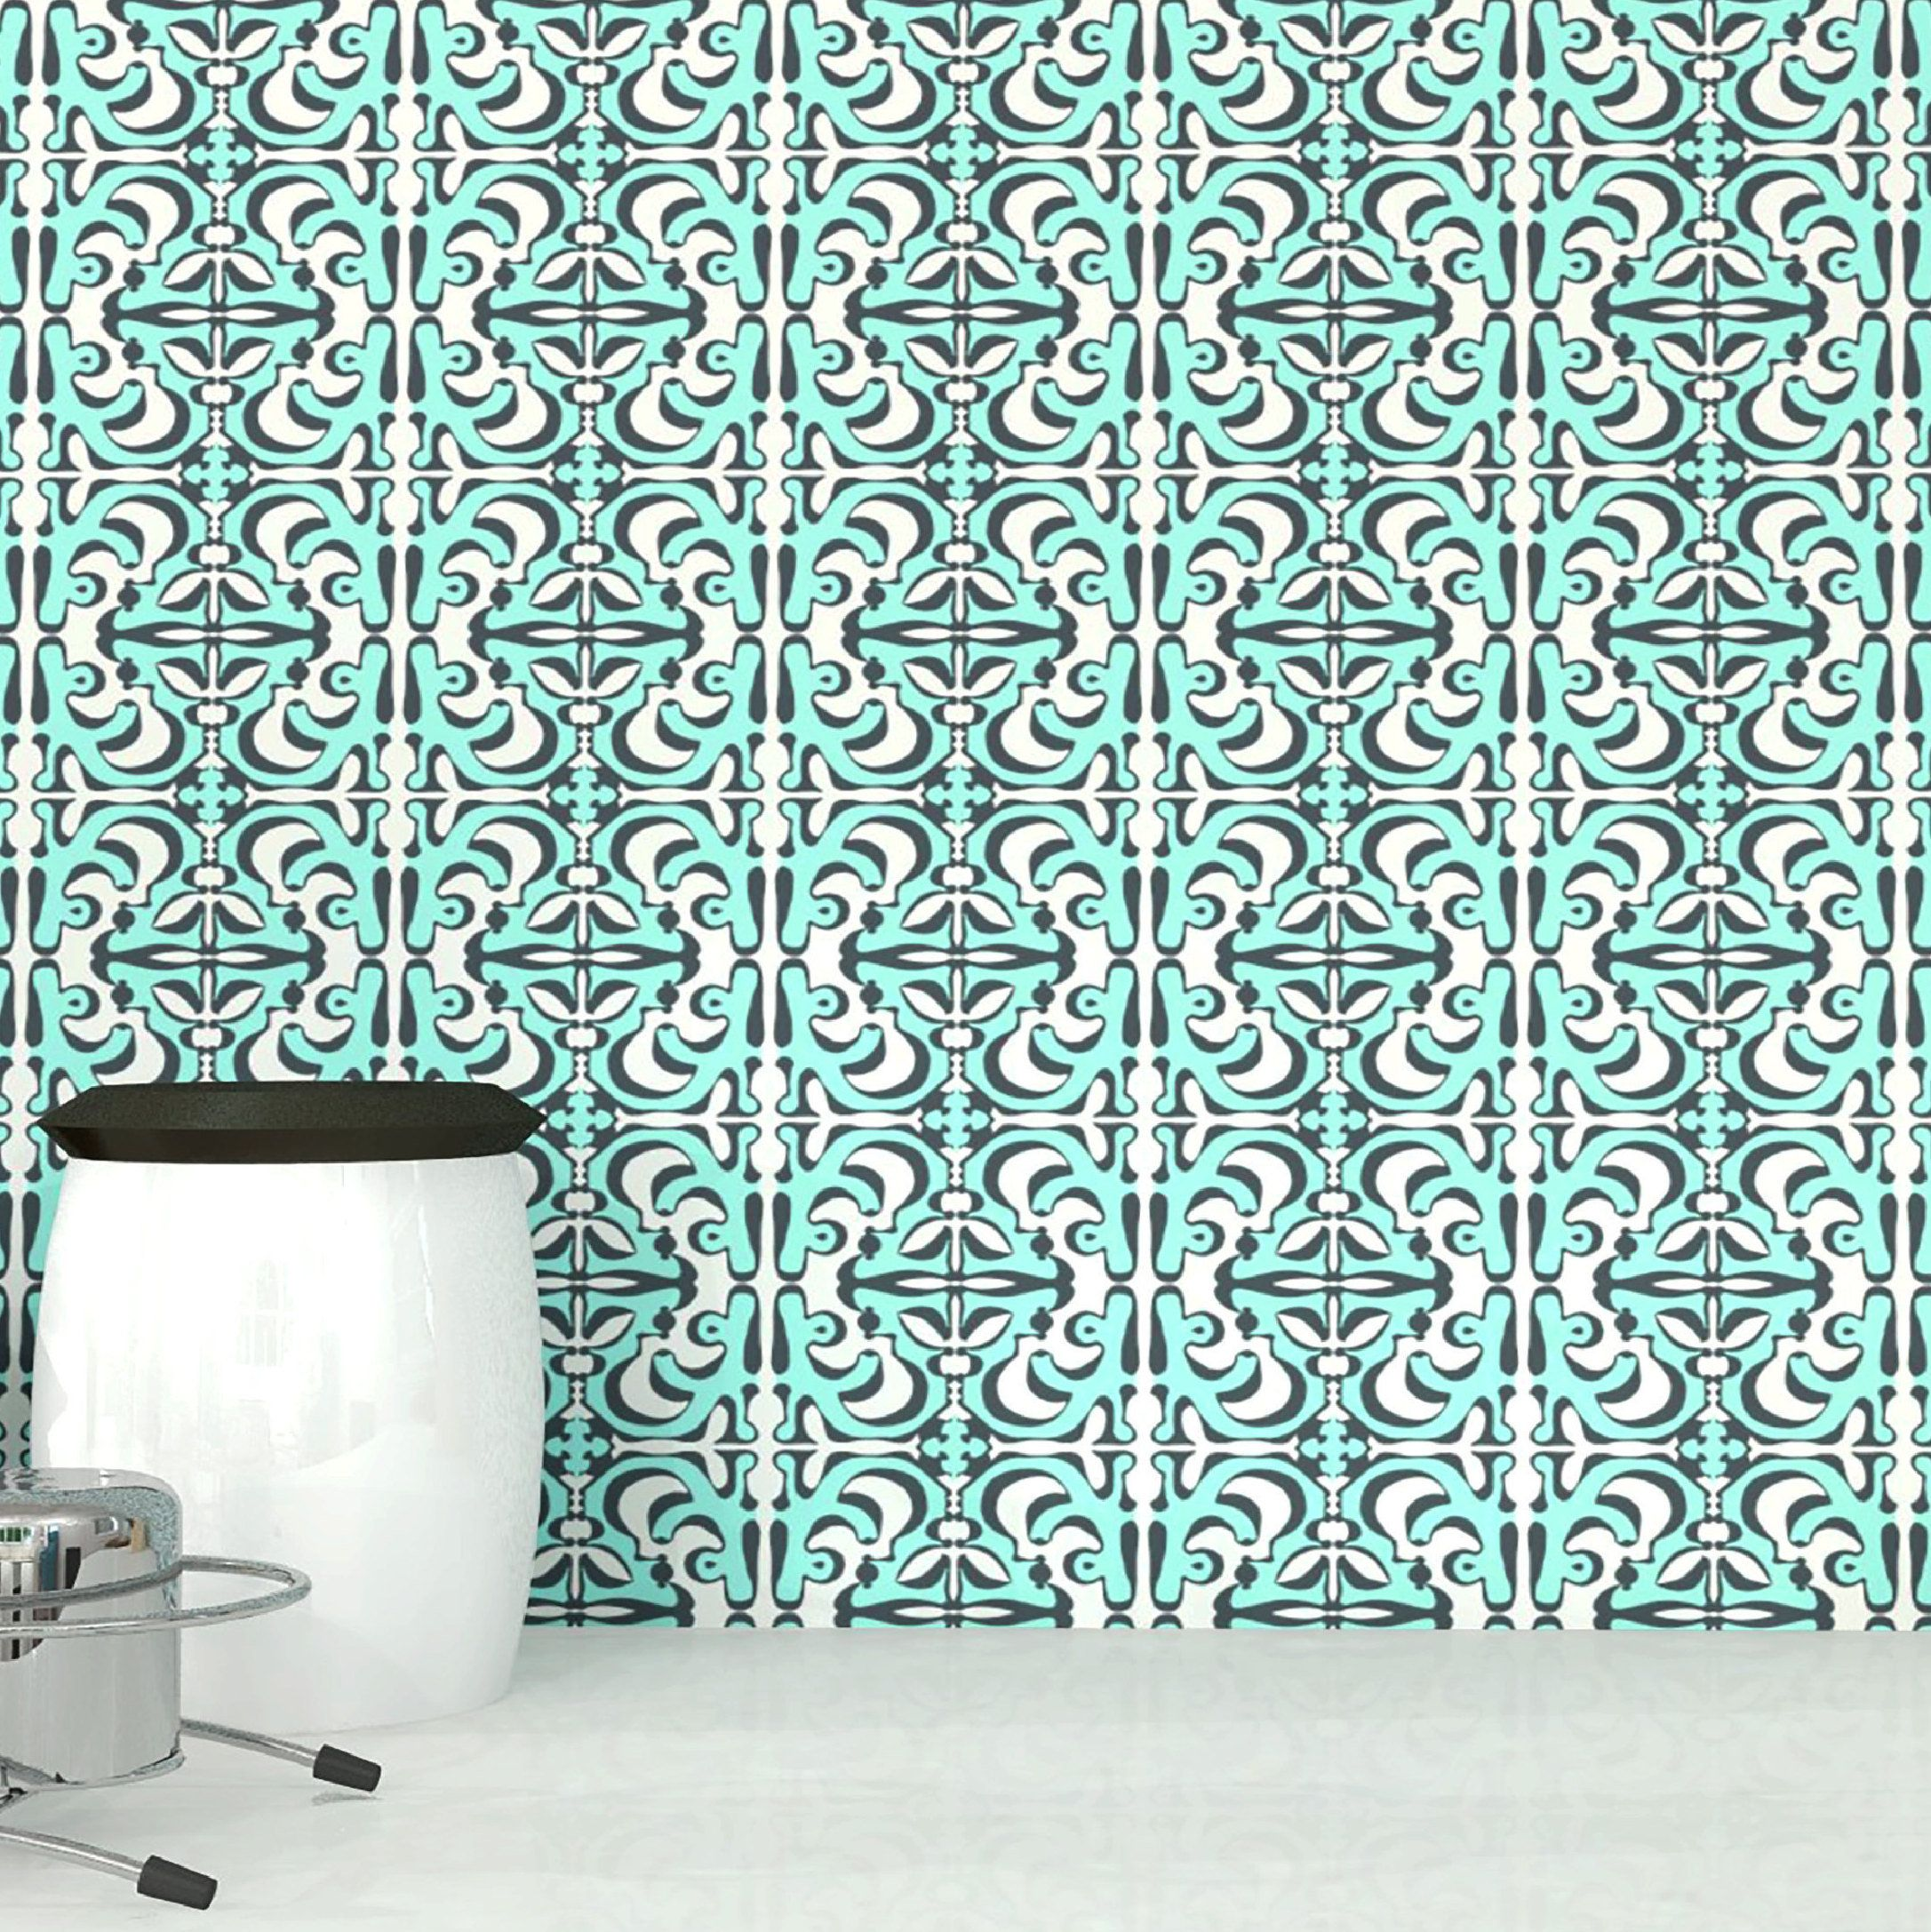 Sunny Side Aqua Ink Peel And Stick Removable Wallpaper 8 X10 Quick Ship Samples Self Adhesive Wall Coverings Removable Wallpaper Traditional Wallpaper